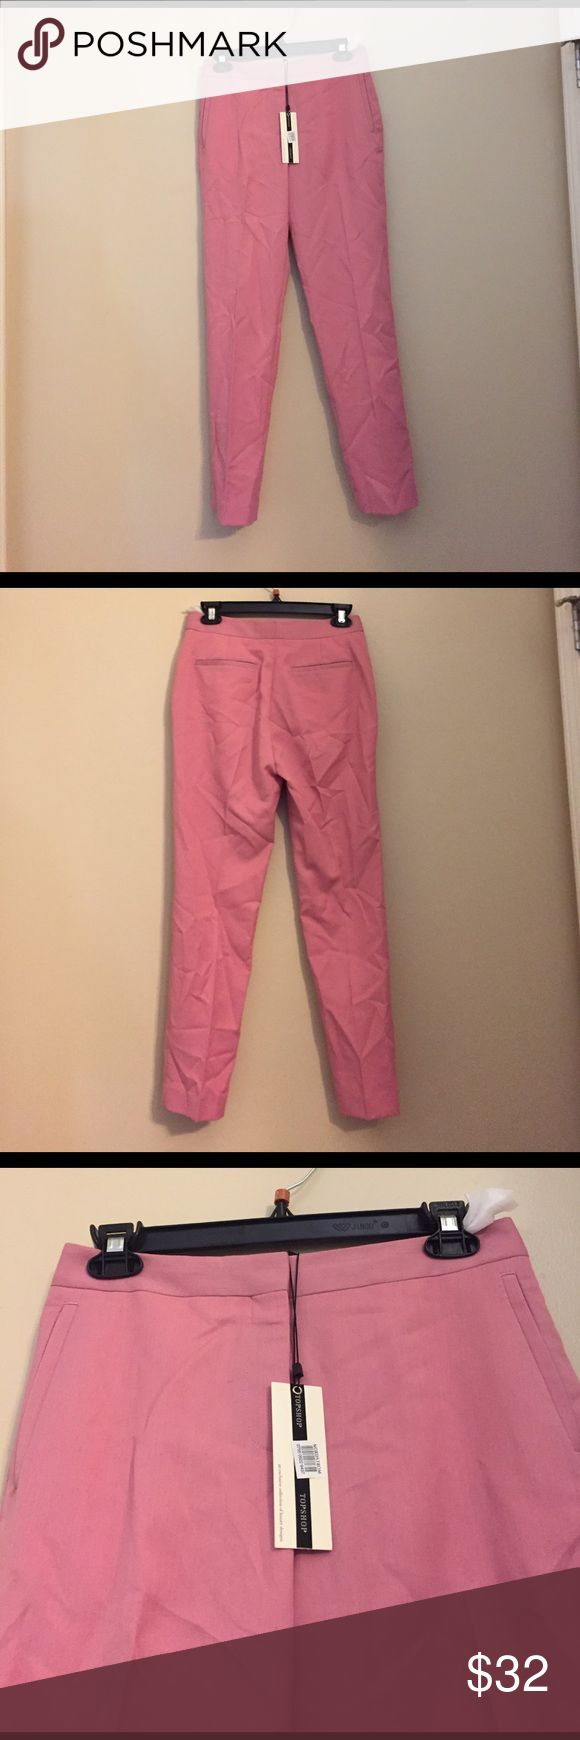 NWT Topshop Trousers NWT Topshop Trousers. Color: Pink. Size: 4. The Trousers just need to be ironed. Feel free to ask any questions. Topshop Pants Trousers